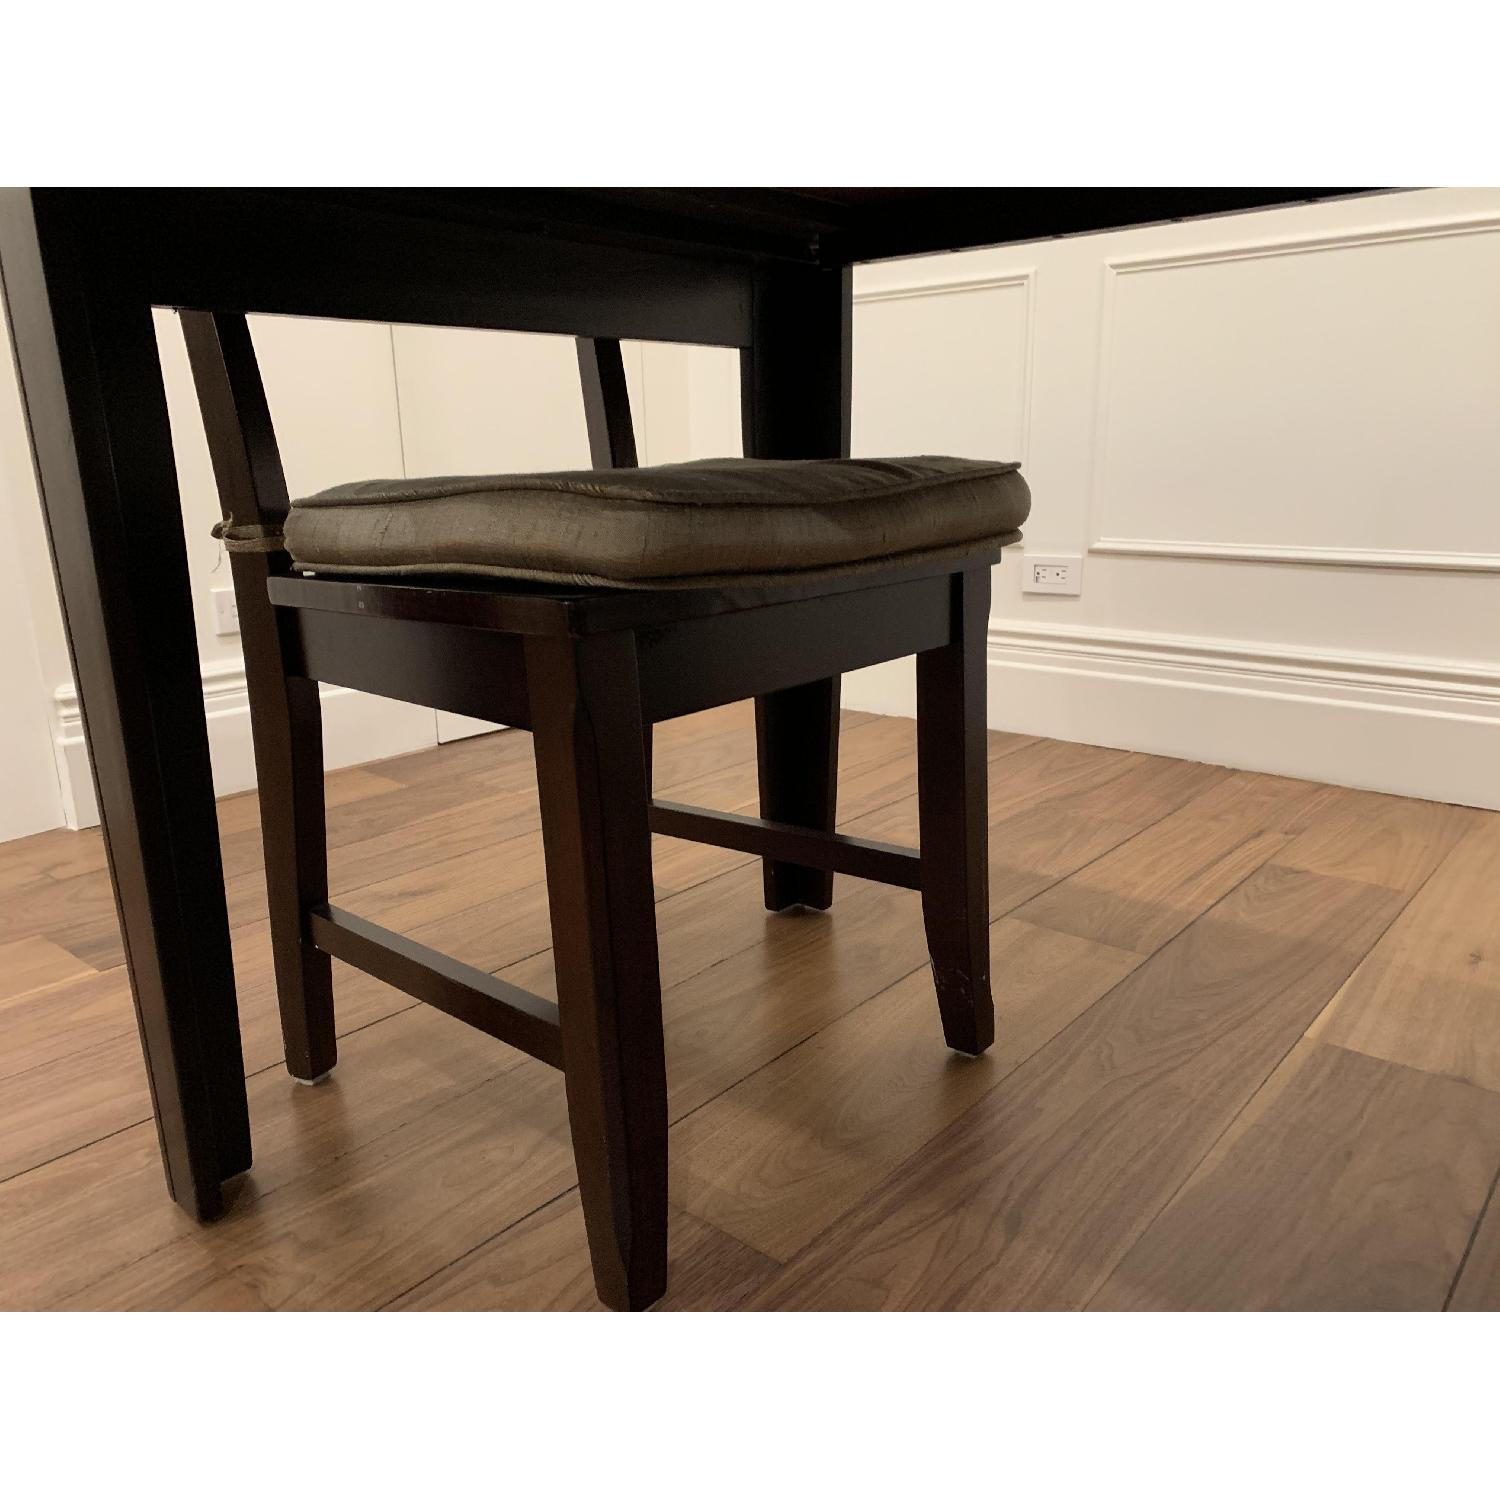 Montreal Espresso Wood Chairs - image-4